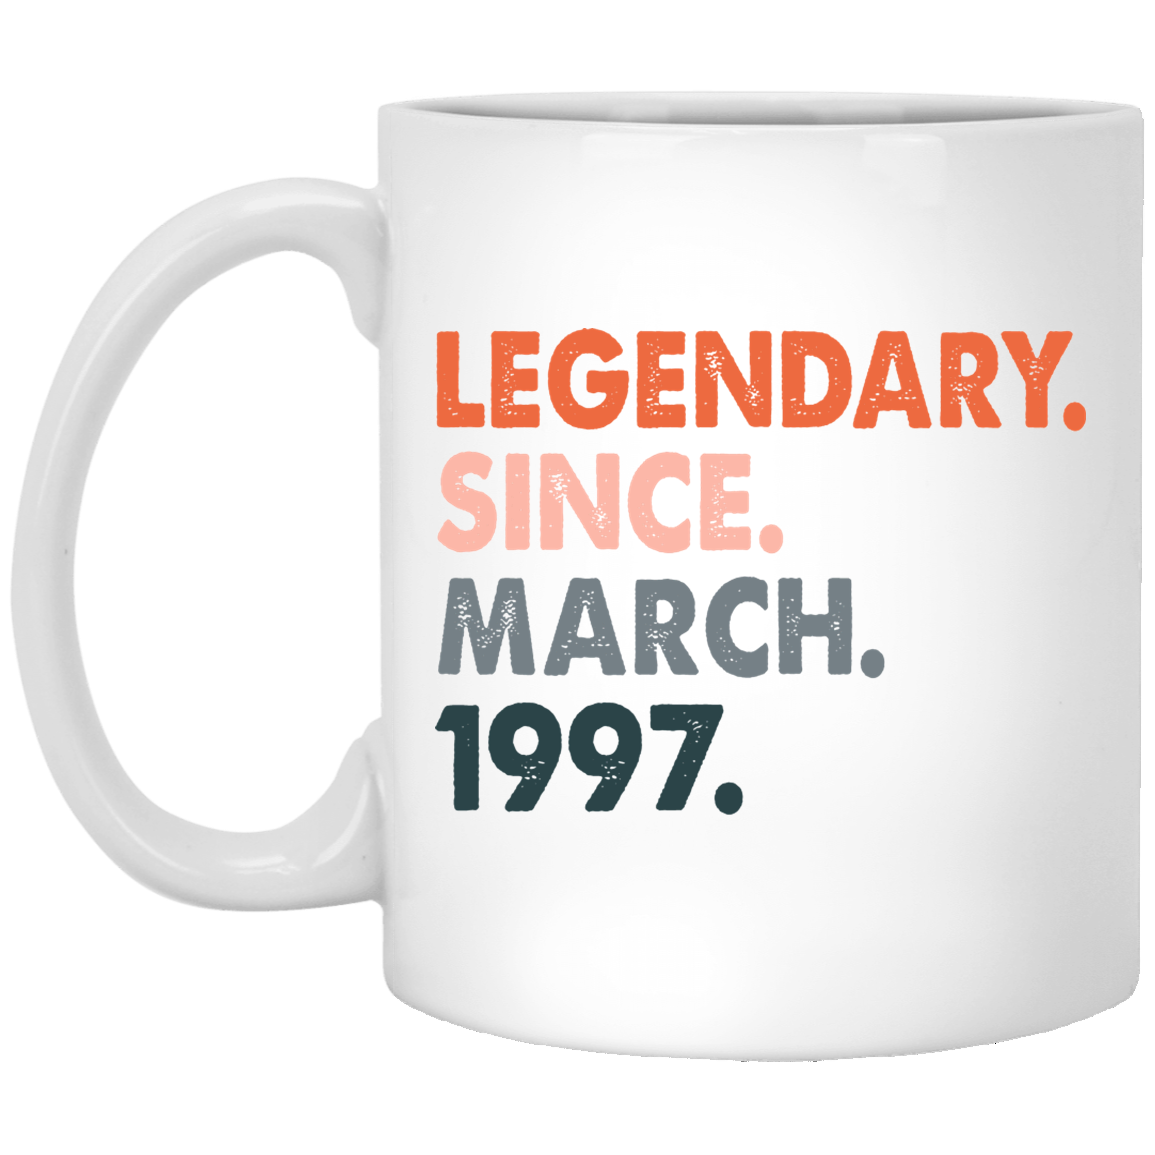 24th-Birthday-Ideas-for-Women-and-Men-Legendary-Since-March-1997 Funny Quotes Coffee Mug 99promocode